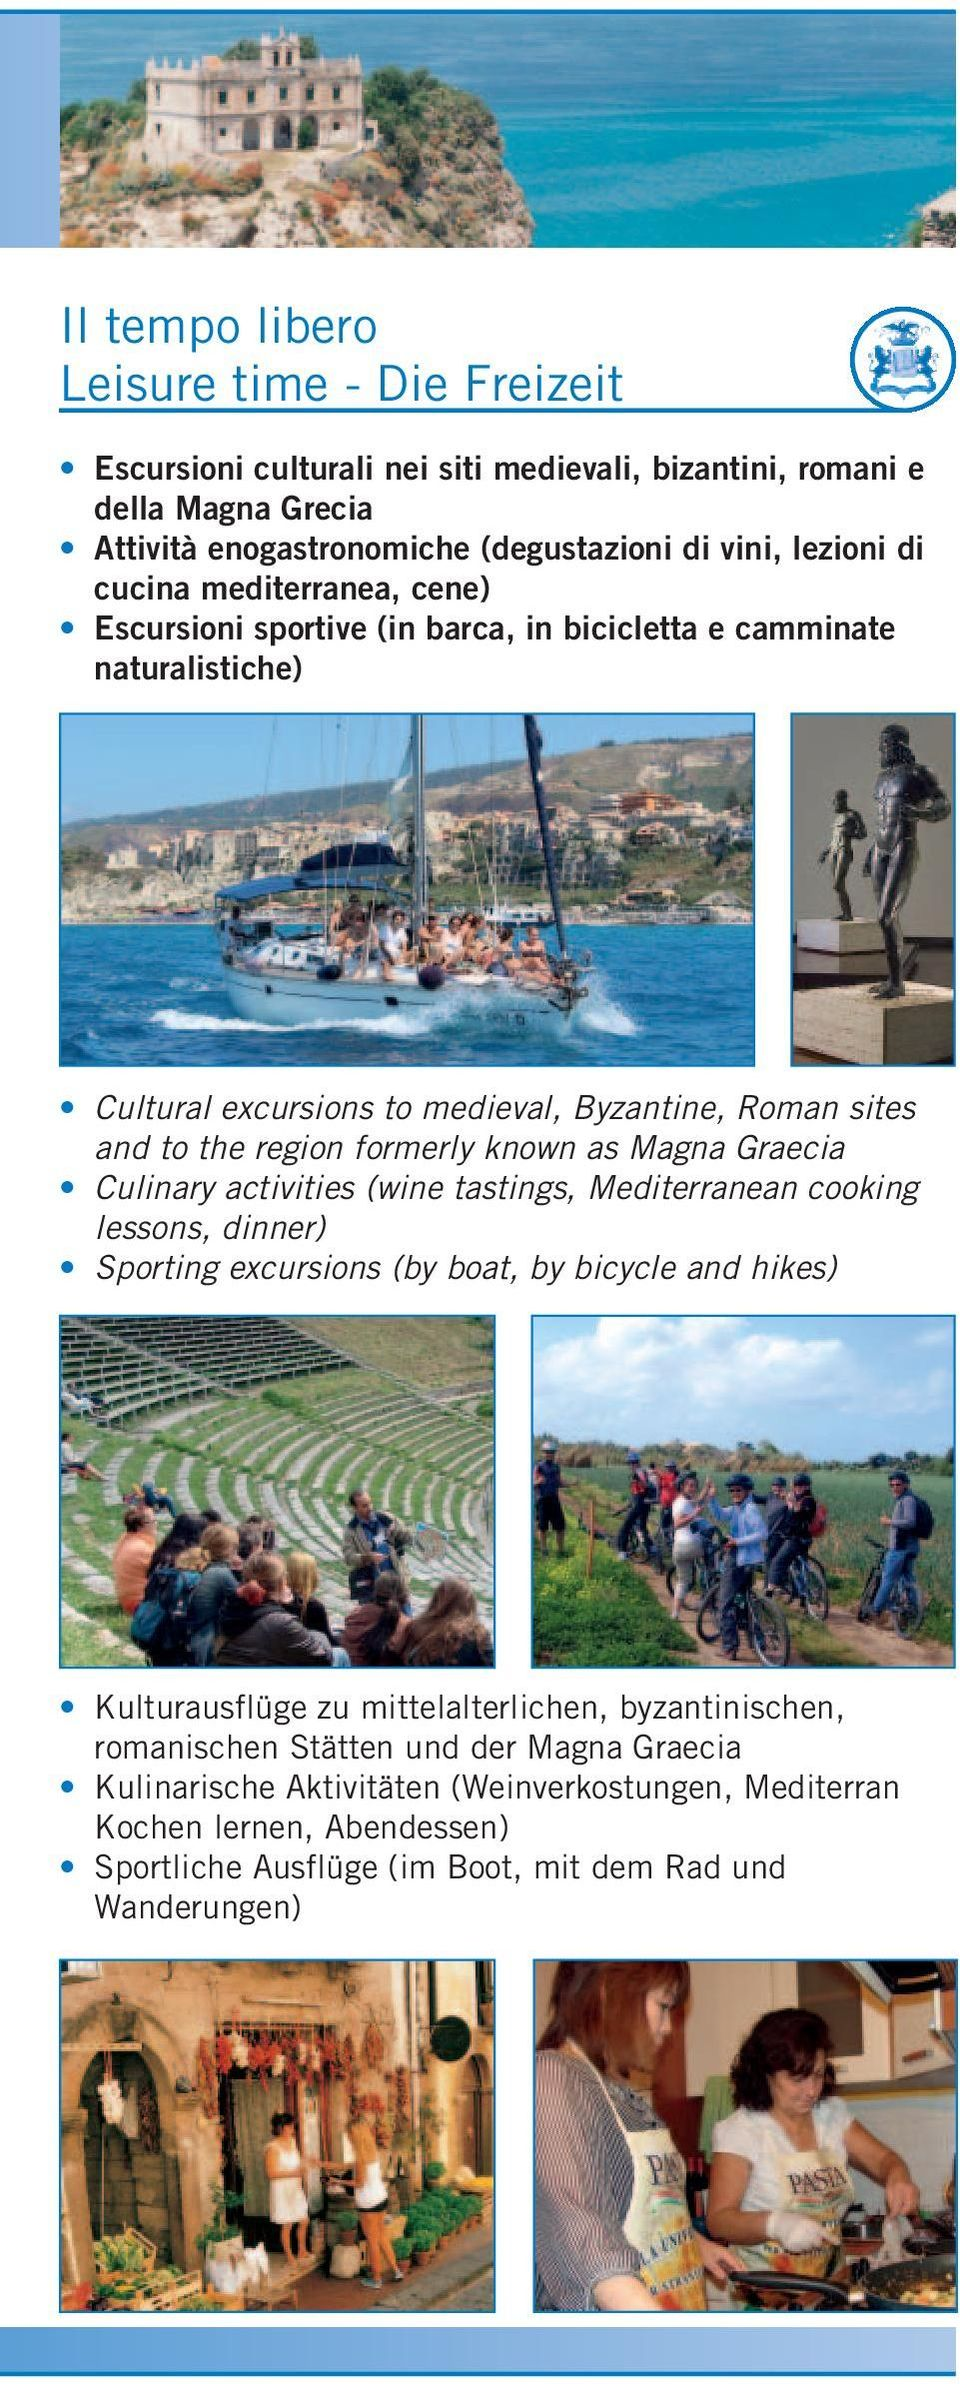 known as Magna Graecia Culinary activities (wine tastings, Mediterranean cooking lessons, dinner) Sporting excursions (by boat, by bicycle and hikes) Kulturausflüge zu mittelalterlichen,